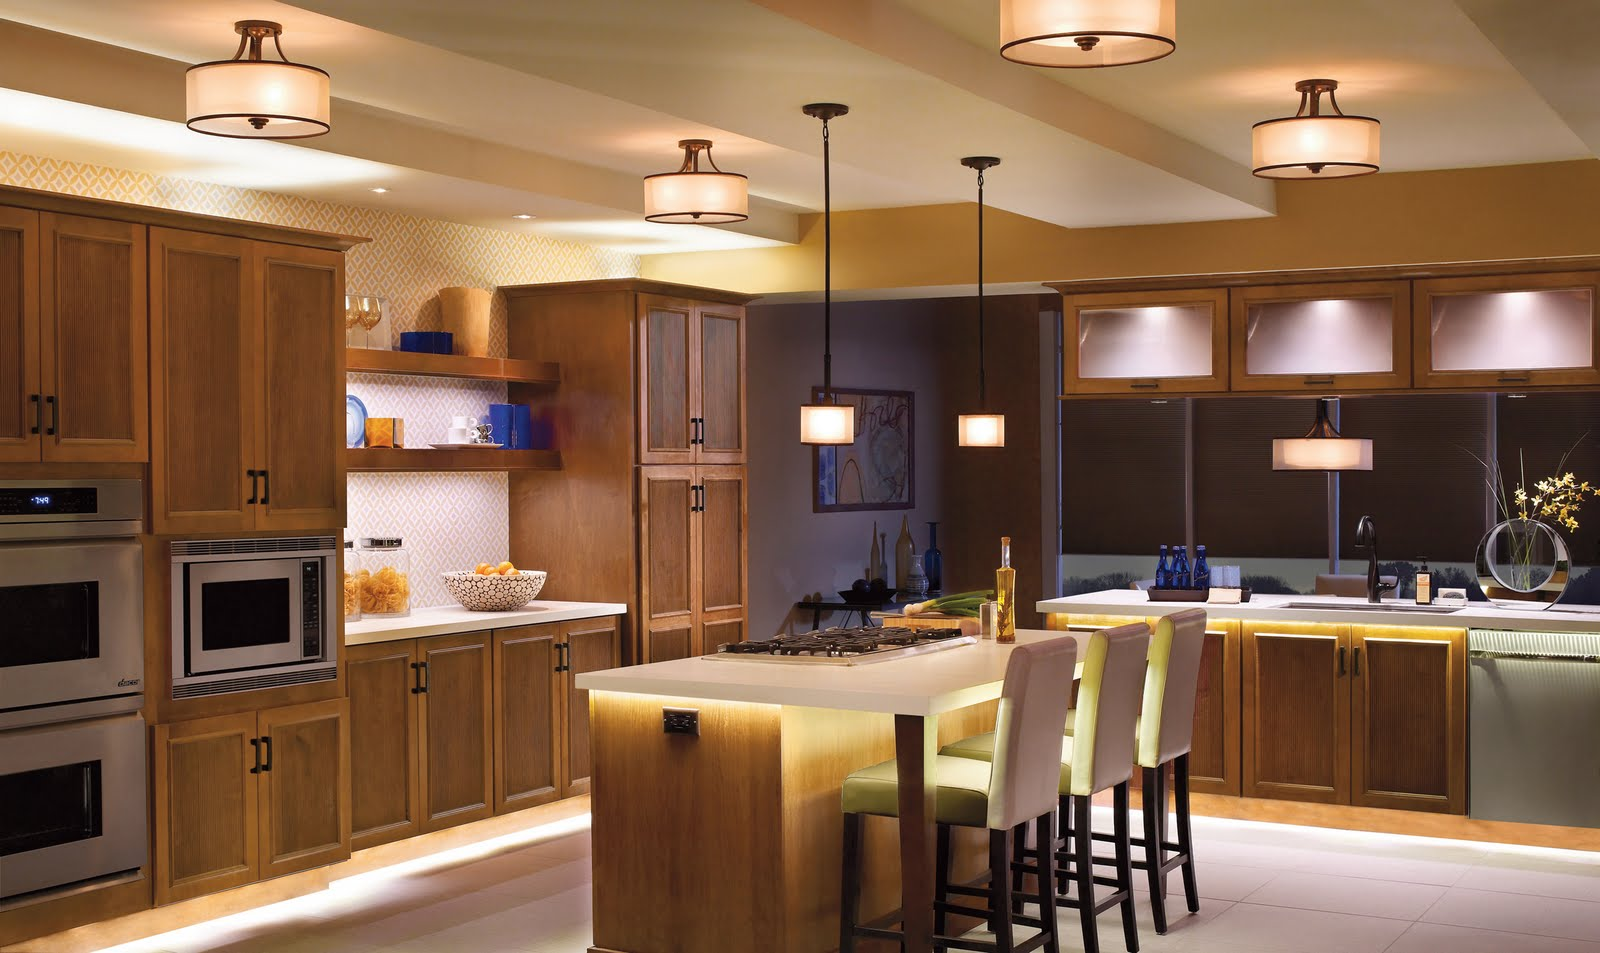 Kitchen Lighting Design Tips | EiXei Home Improvement Photo